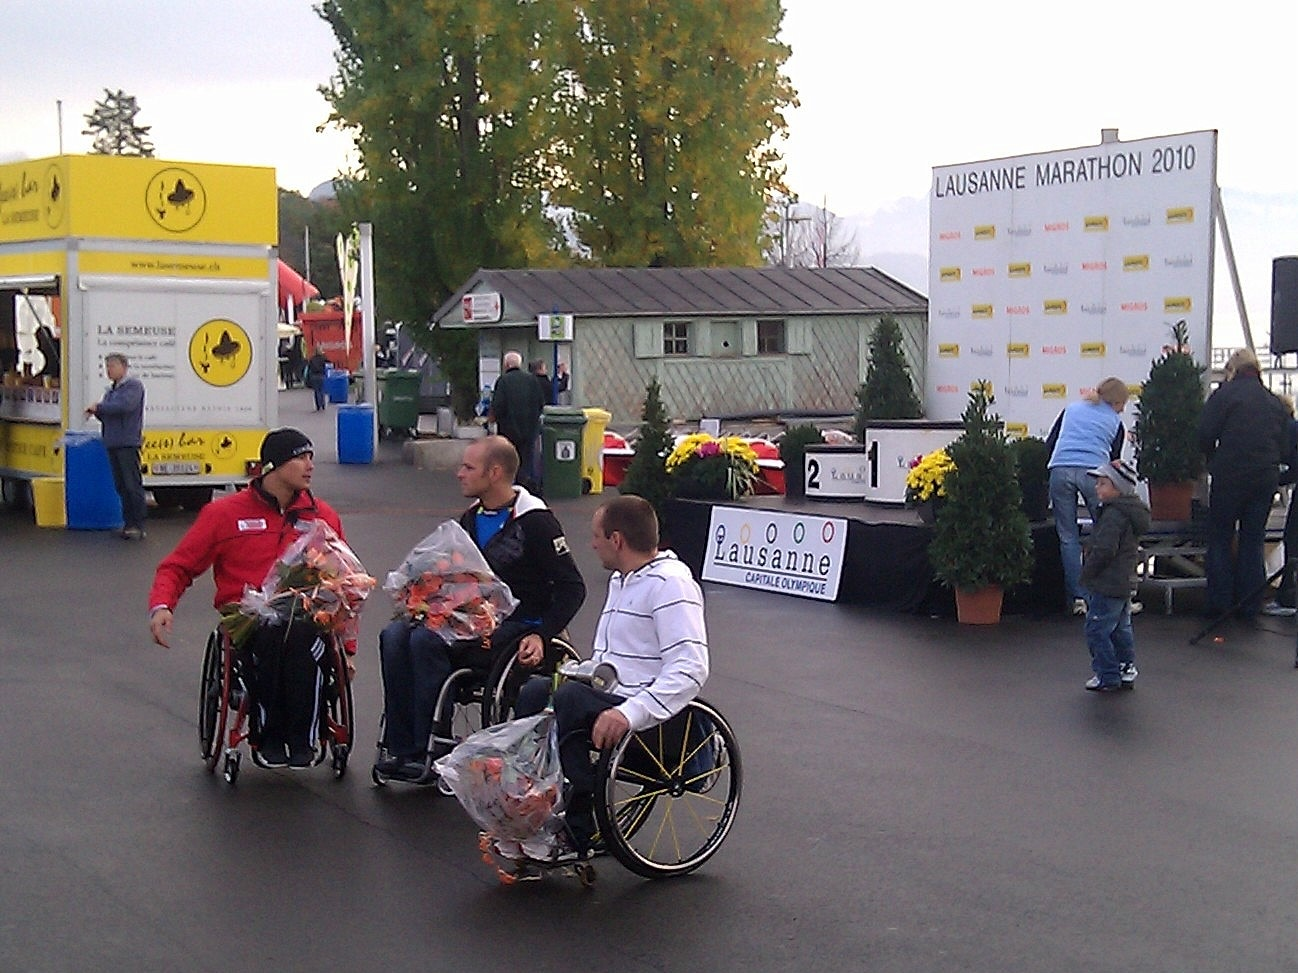 Winners of the wheelchair version of the Lausanne Marathon, which took place today.